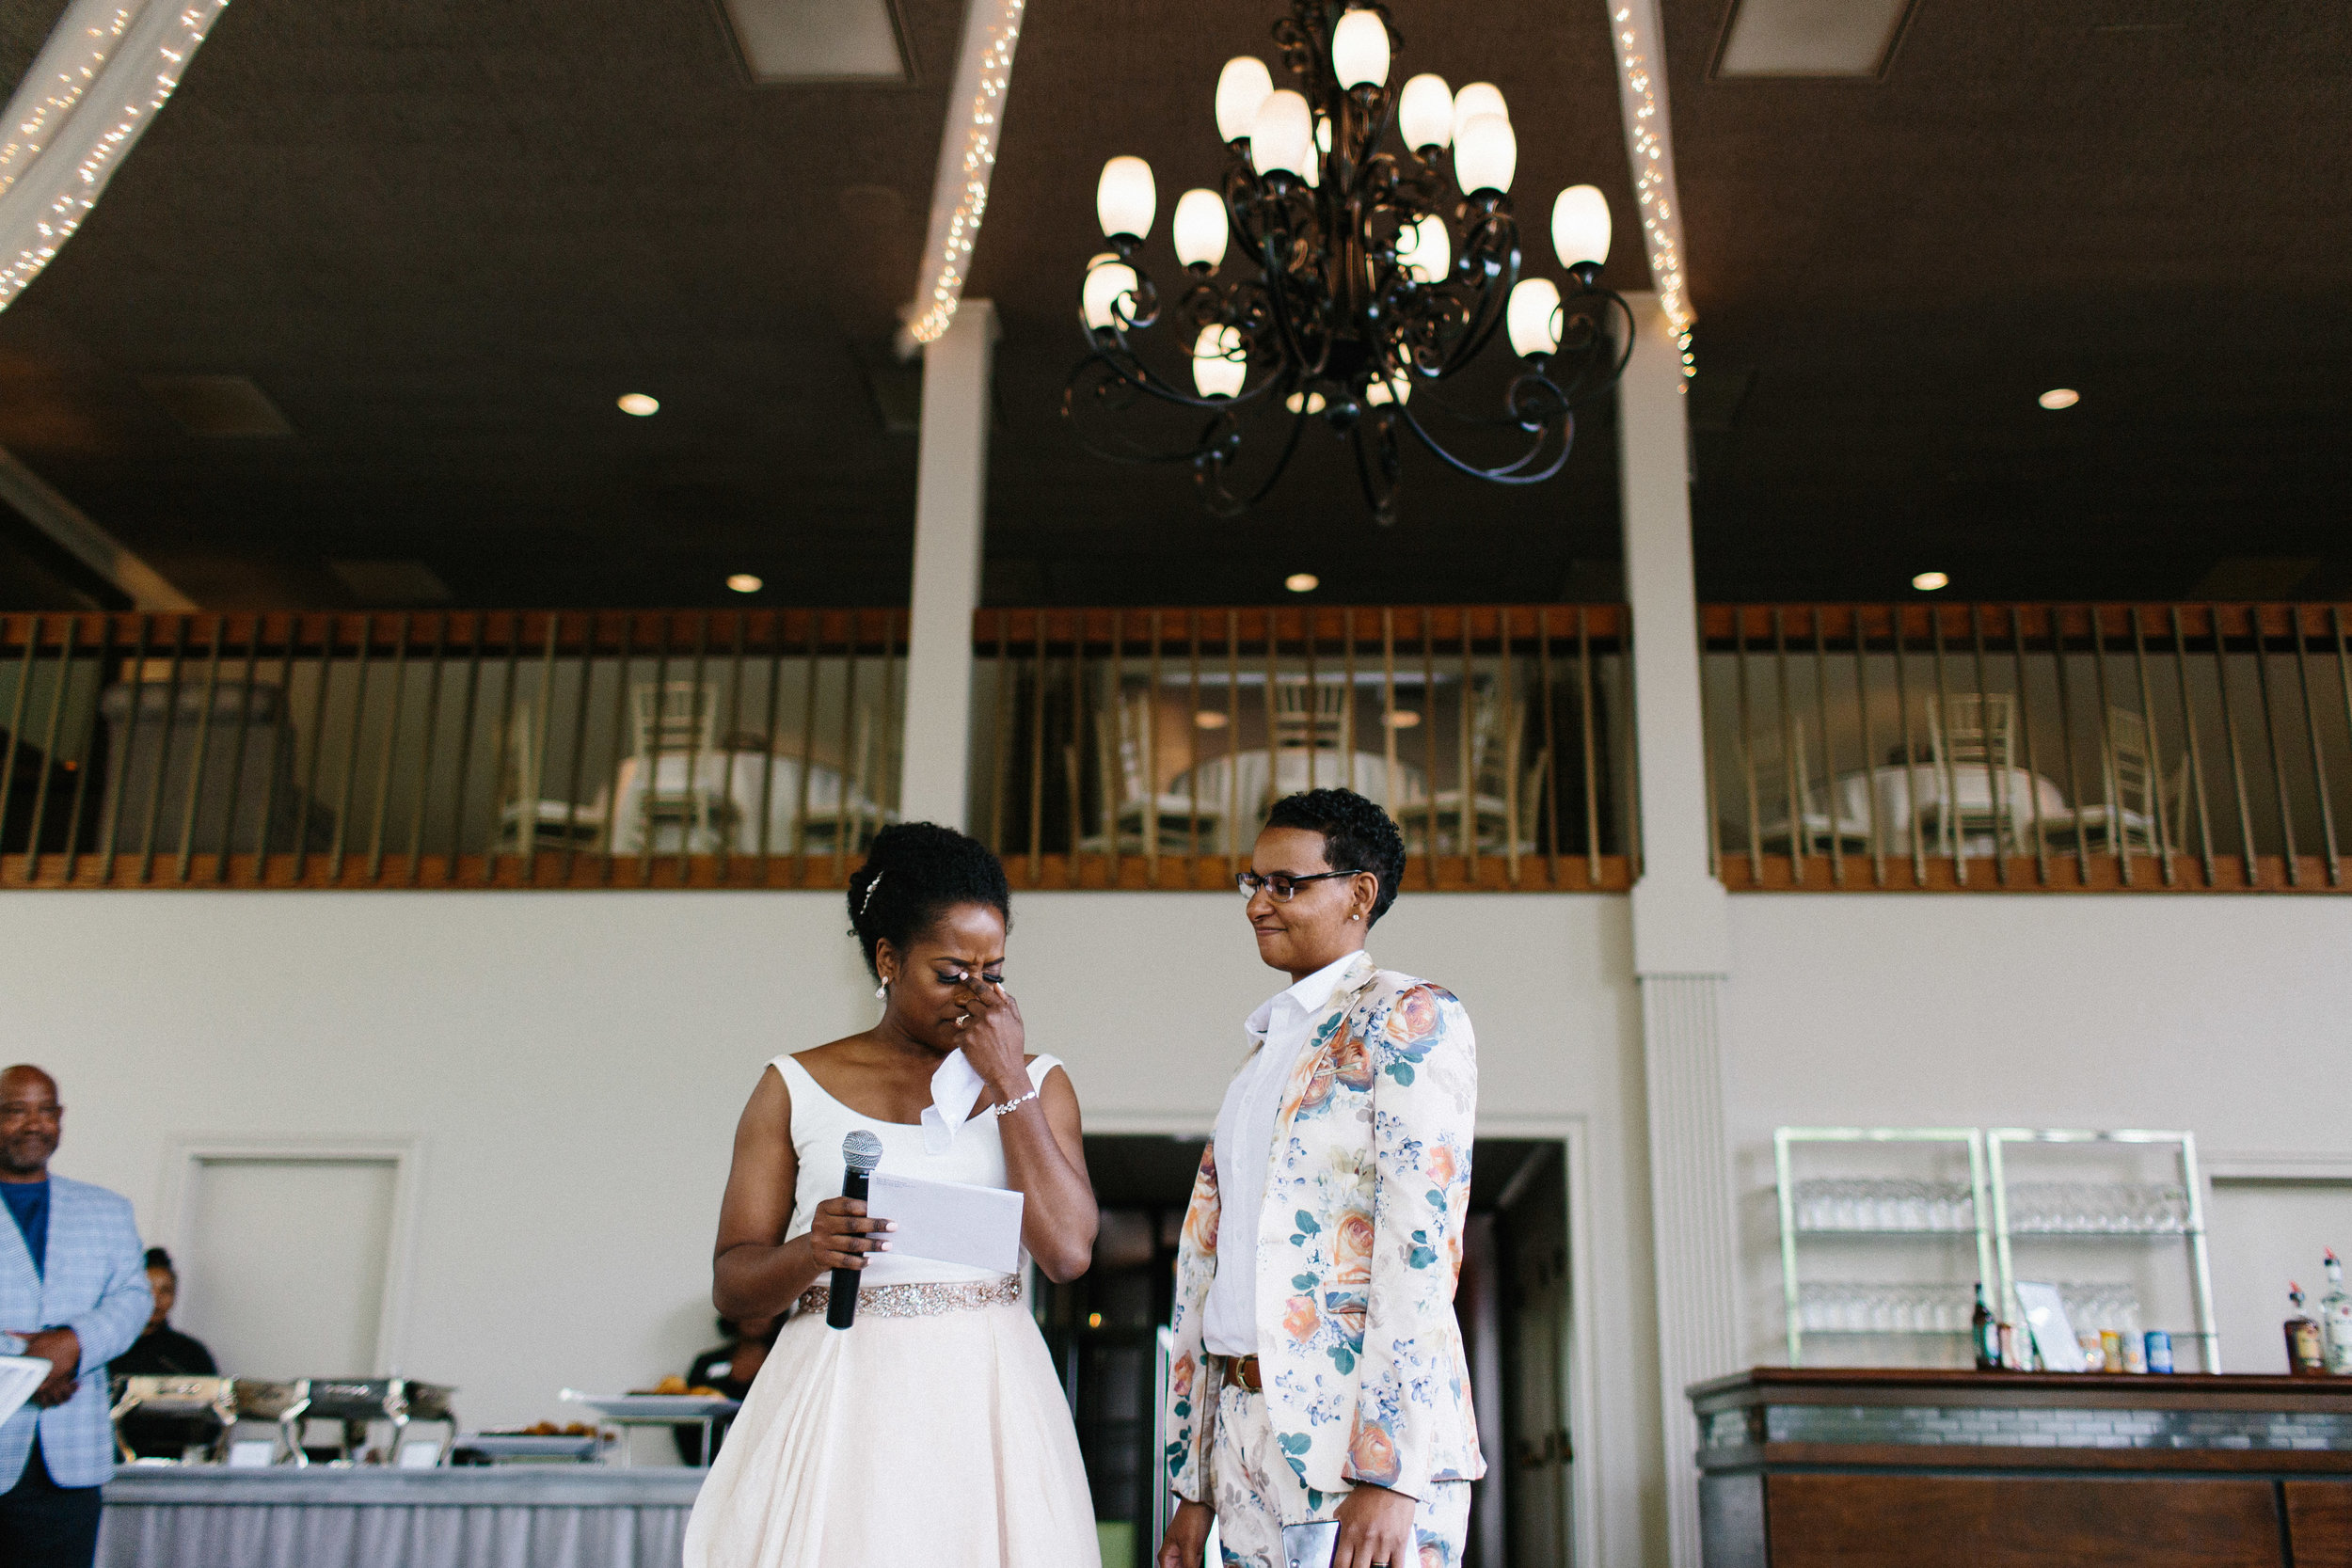 the_atrium_wedding_atlanta_norcross_lifestyle_photographers_lgbtq_1398.jpg